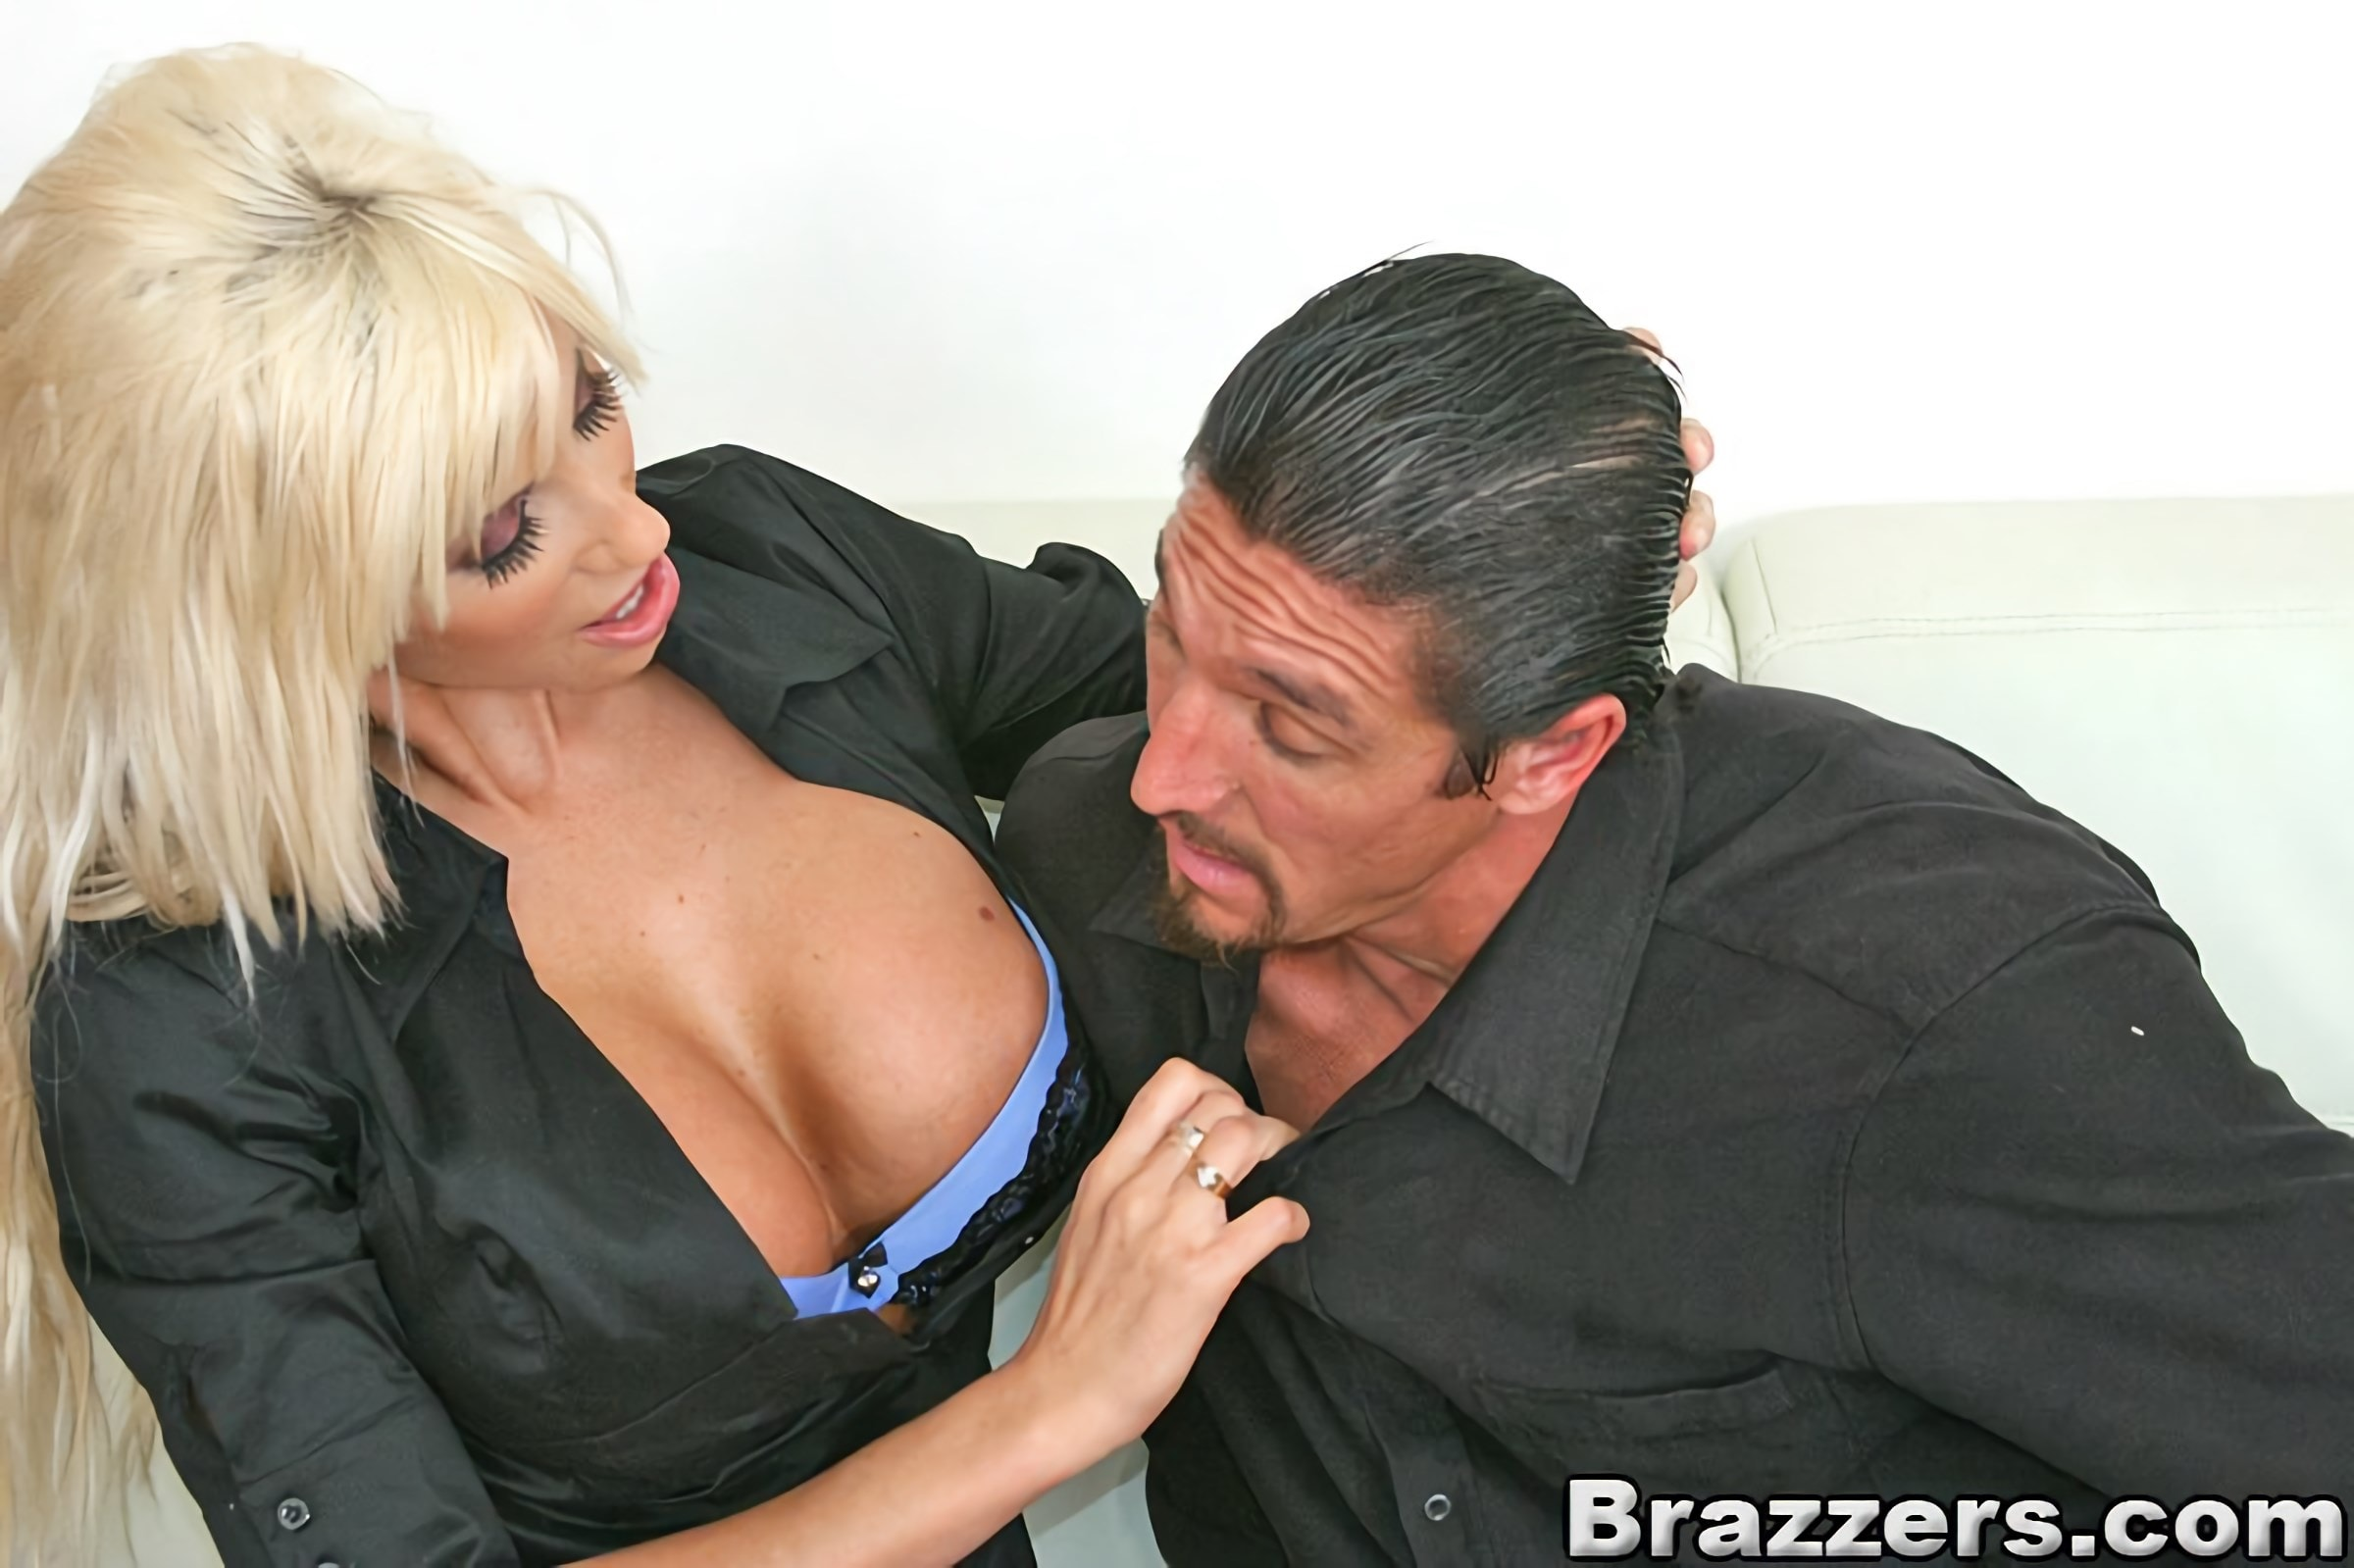 Brazzers 'Role playing treatment' starring Puma Swede (photo 6)